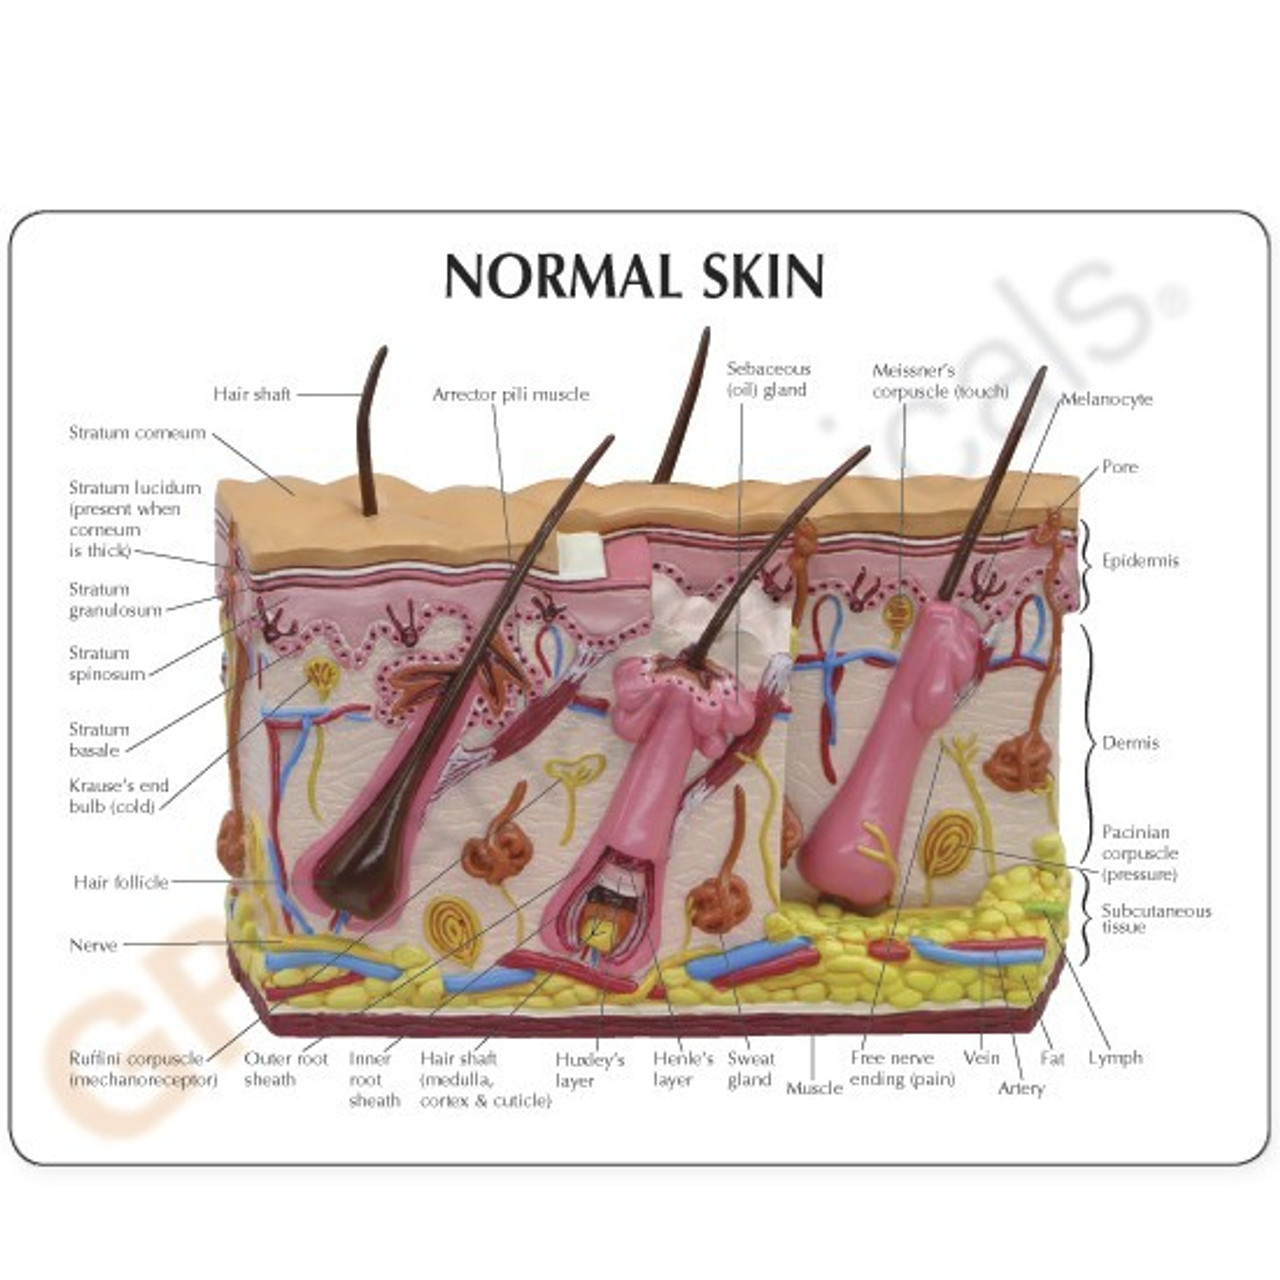 Acne Skin Model Description Card